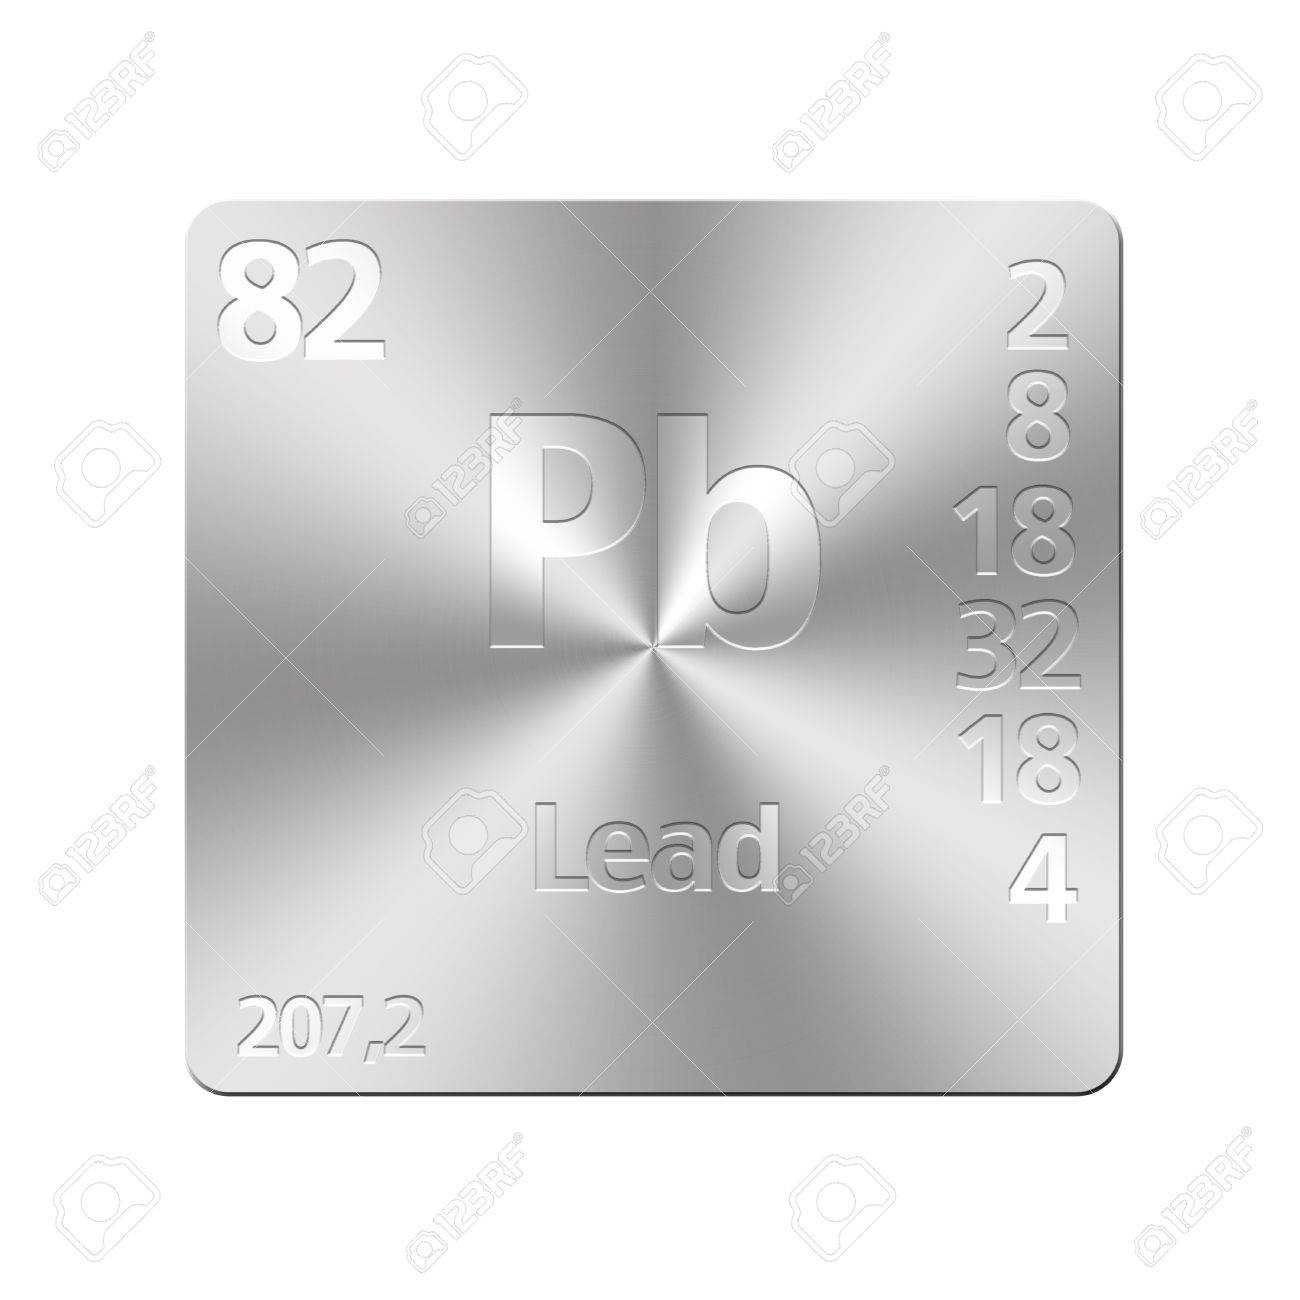 Isolated metal button with periodic table lead stock photo isolated metal button with periodic table lead stock photo 15972704 urtaz Images